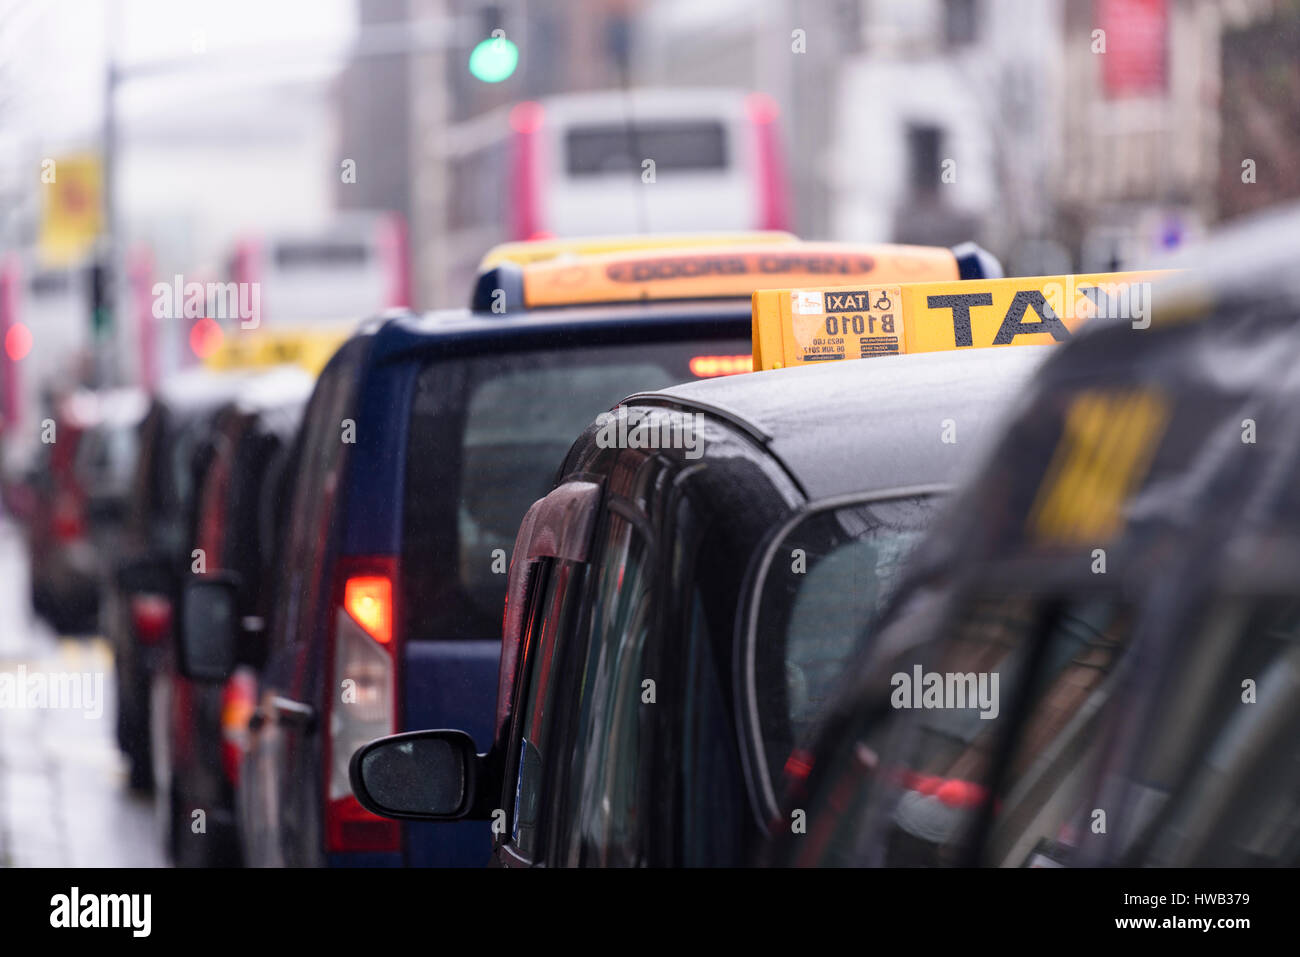 Black London-style taxis with yellow taxi roof signs lined up at a taxi rank outside Belfast City Hall Stock Photo